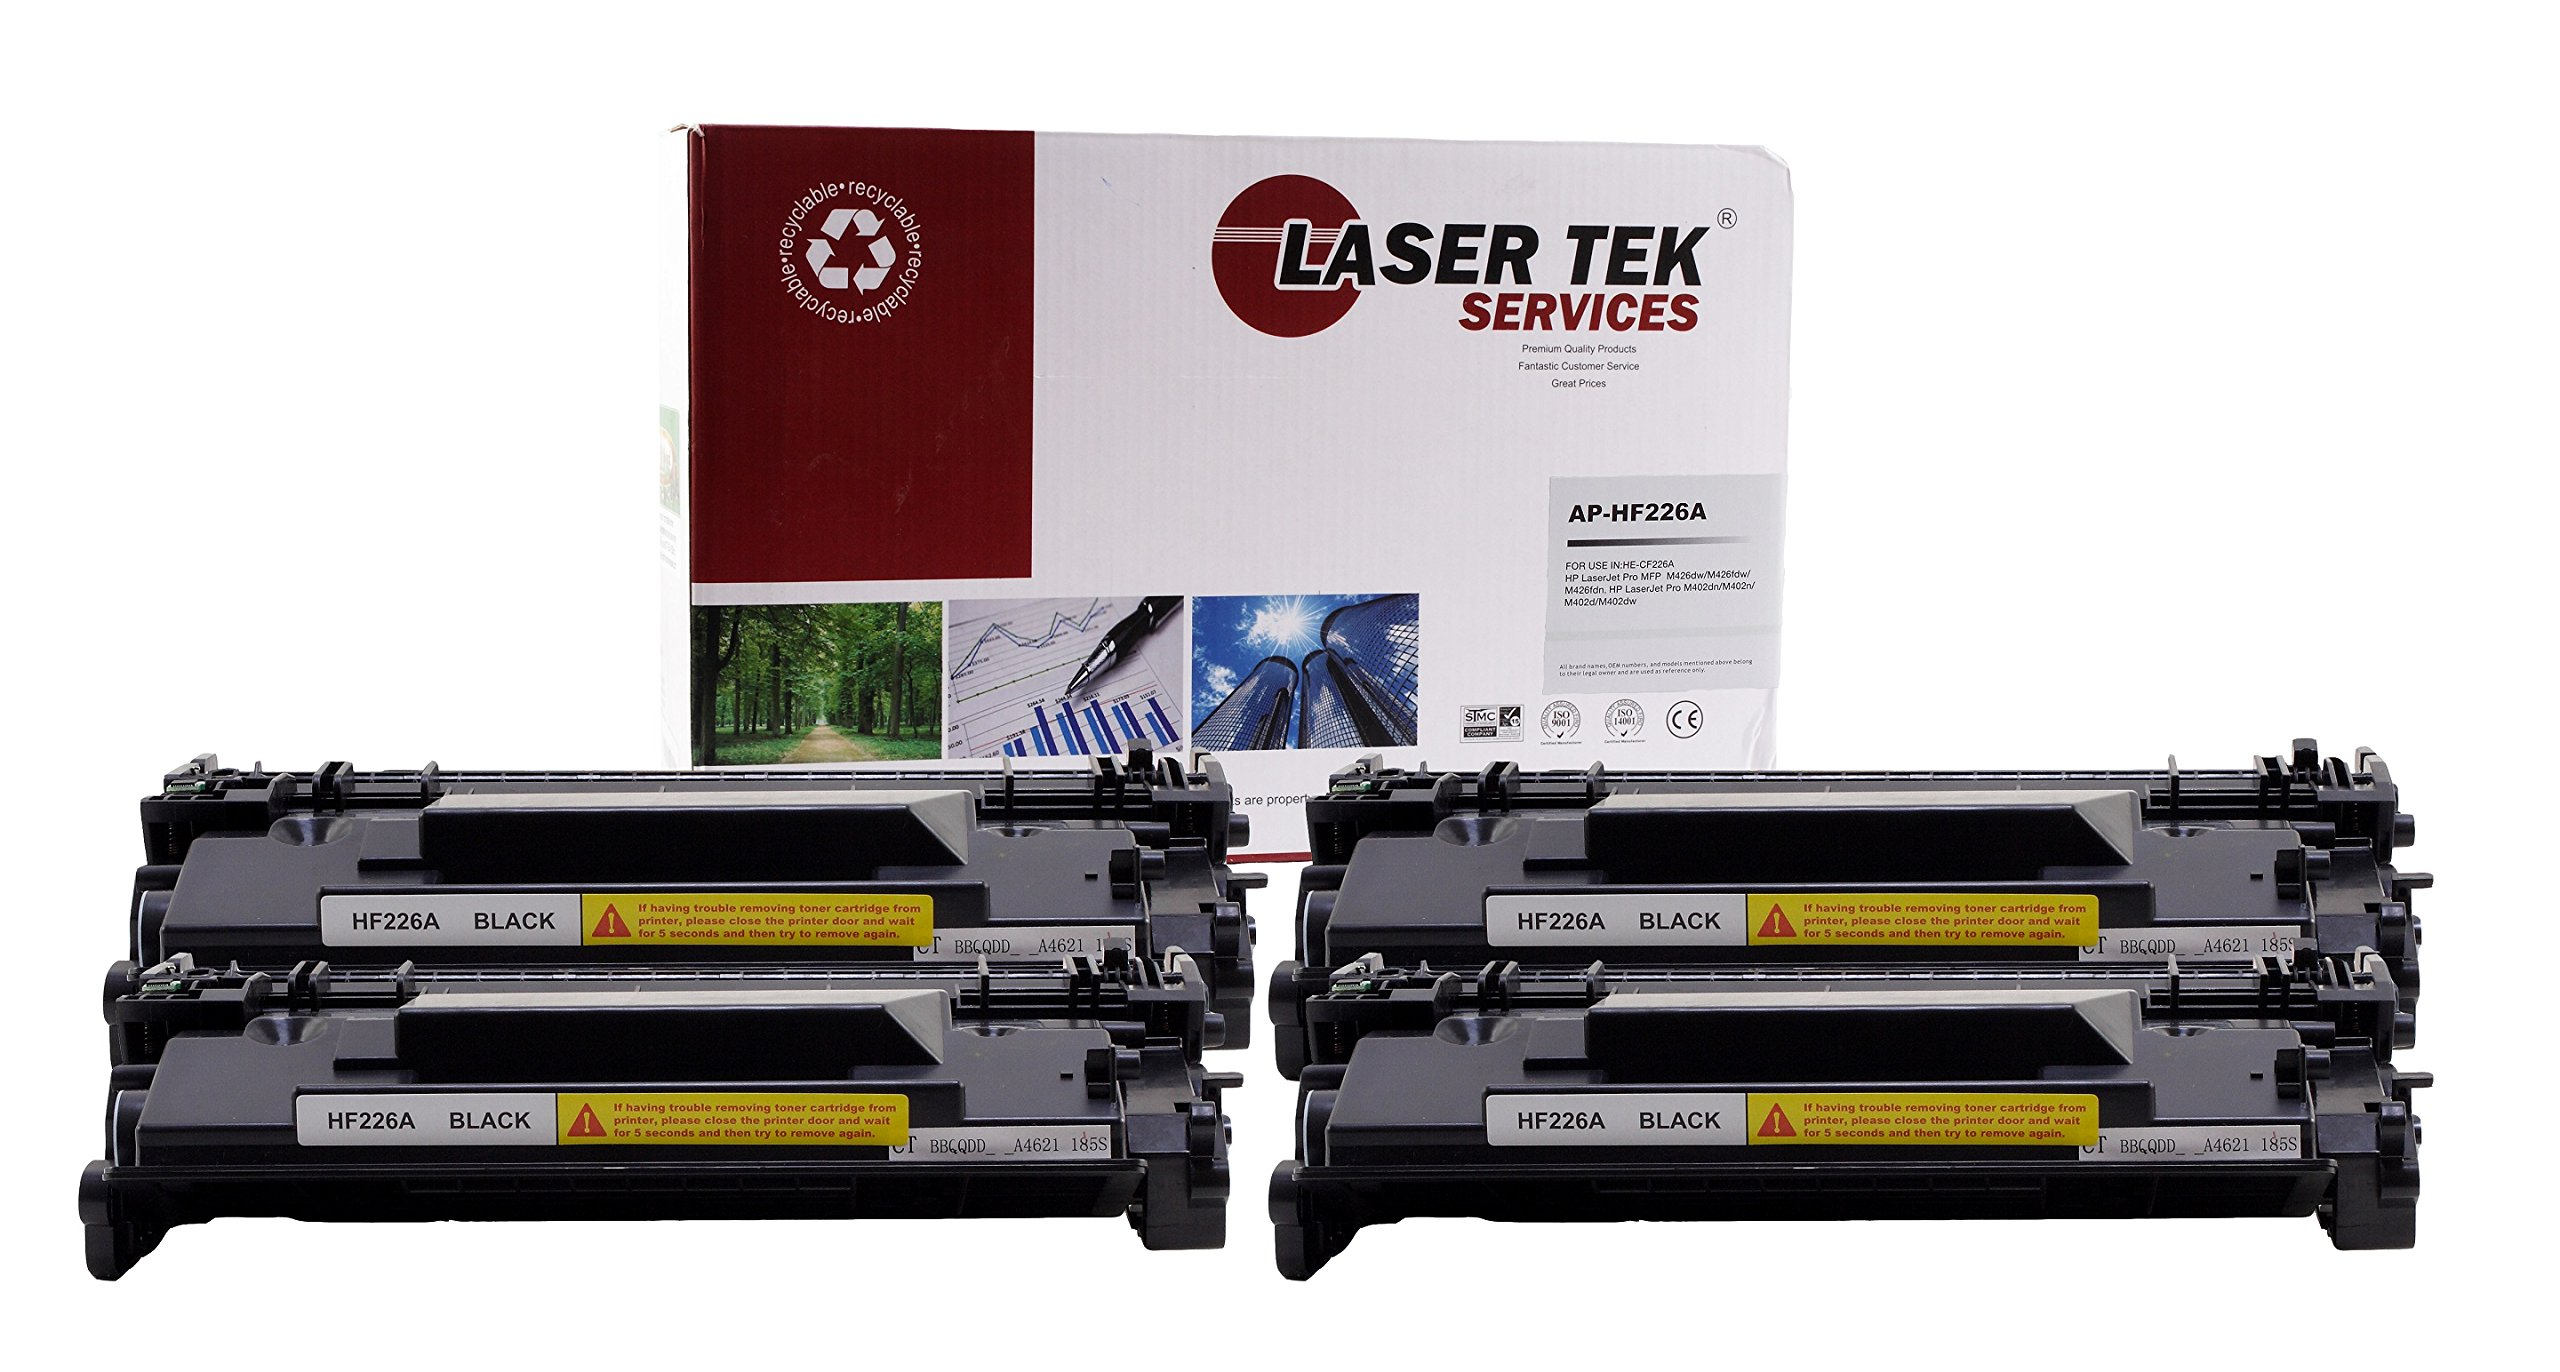 Laser Tek Services Compatible Toner Cartridge Replacement for the HP CF226A. (Black, 4-Pack)